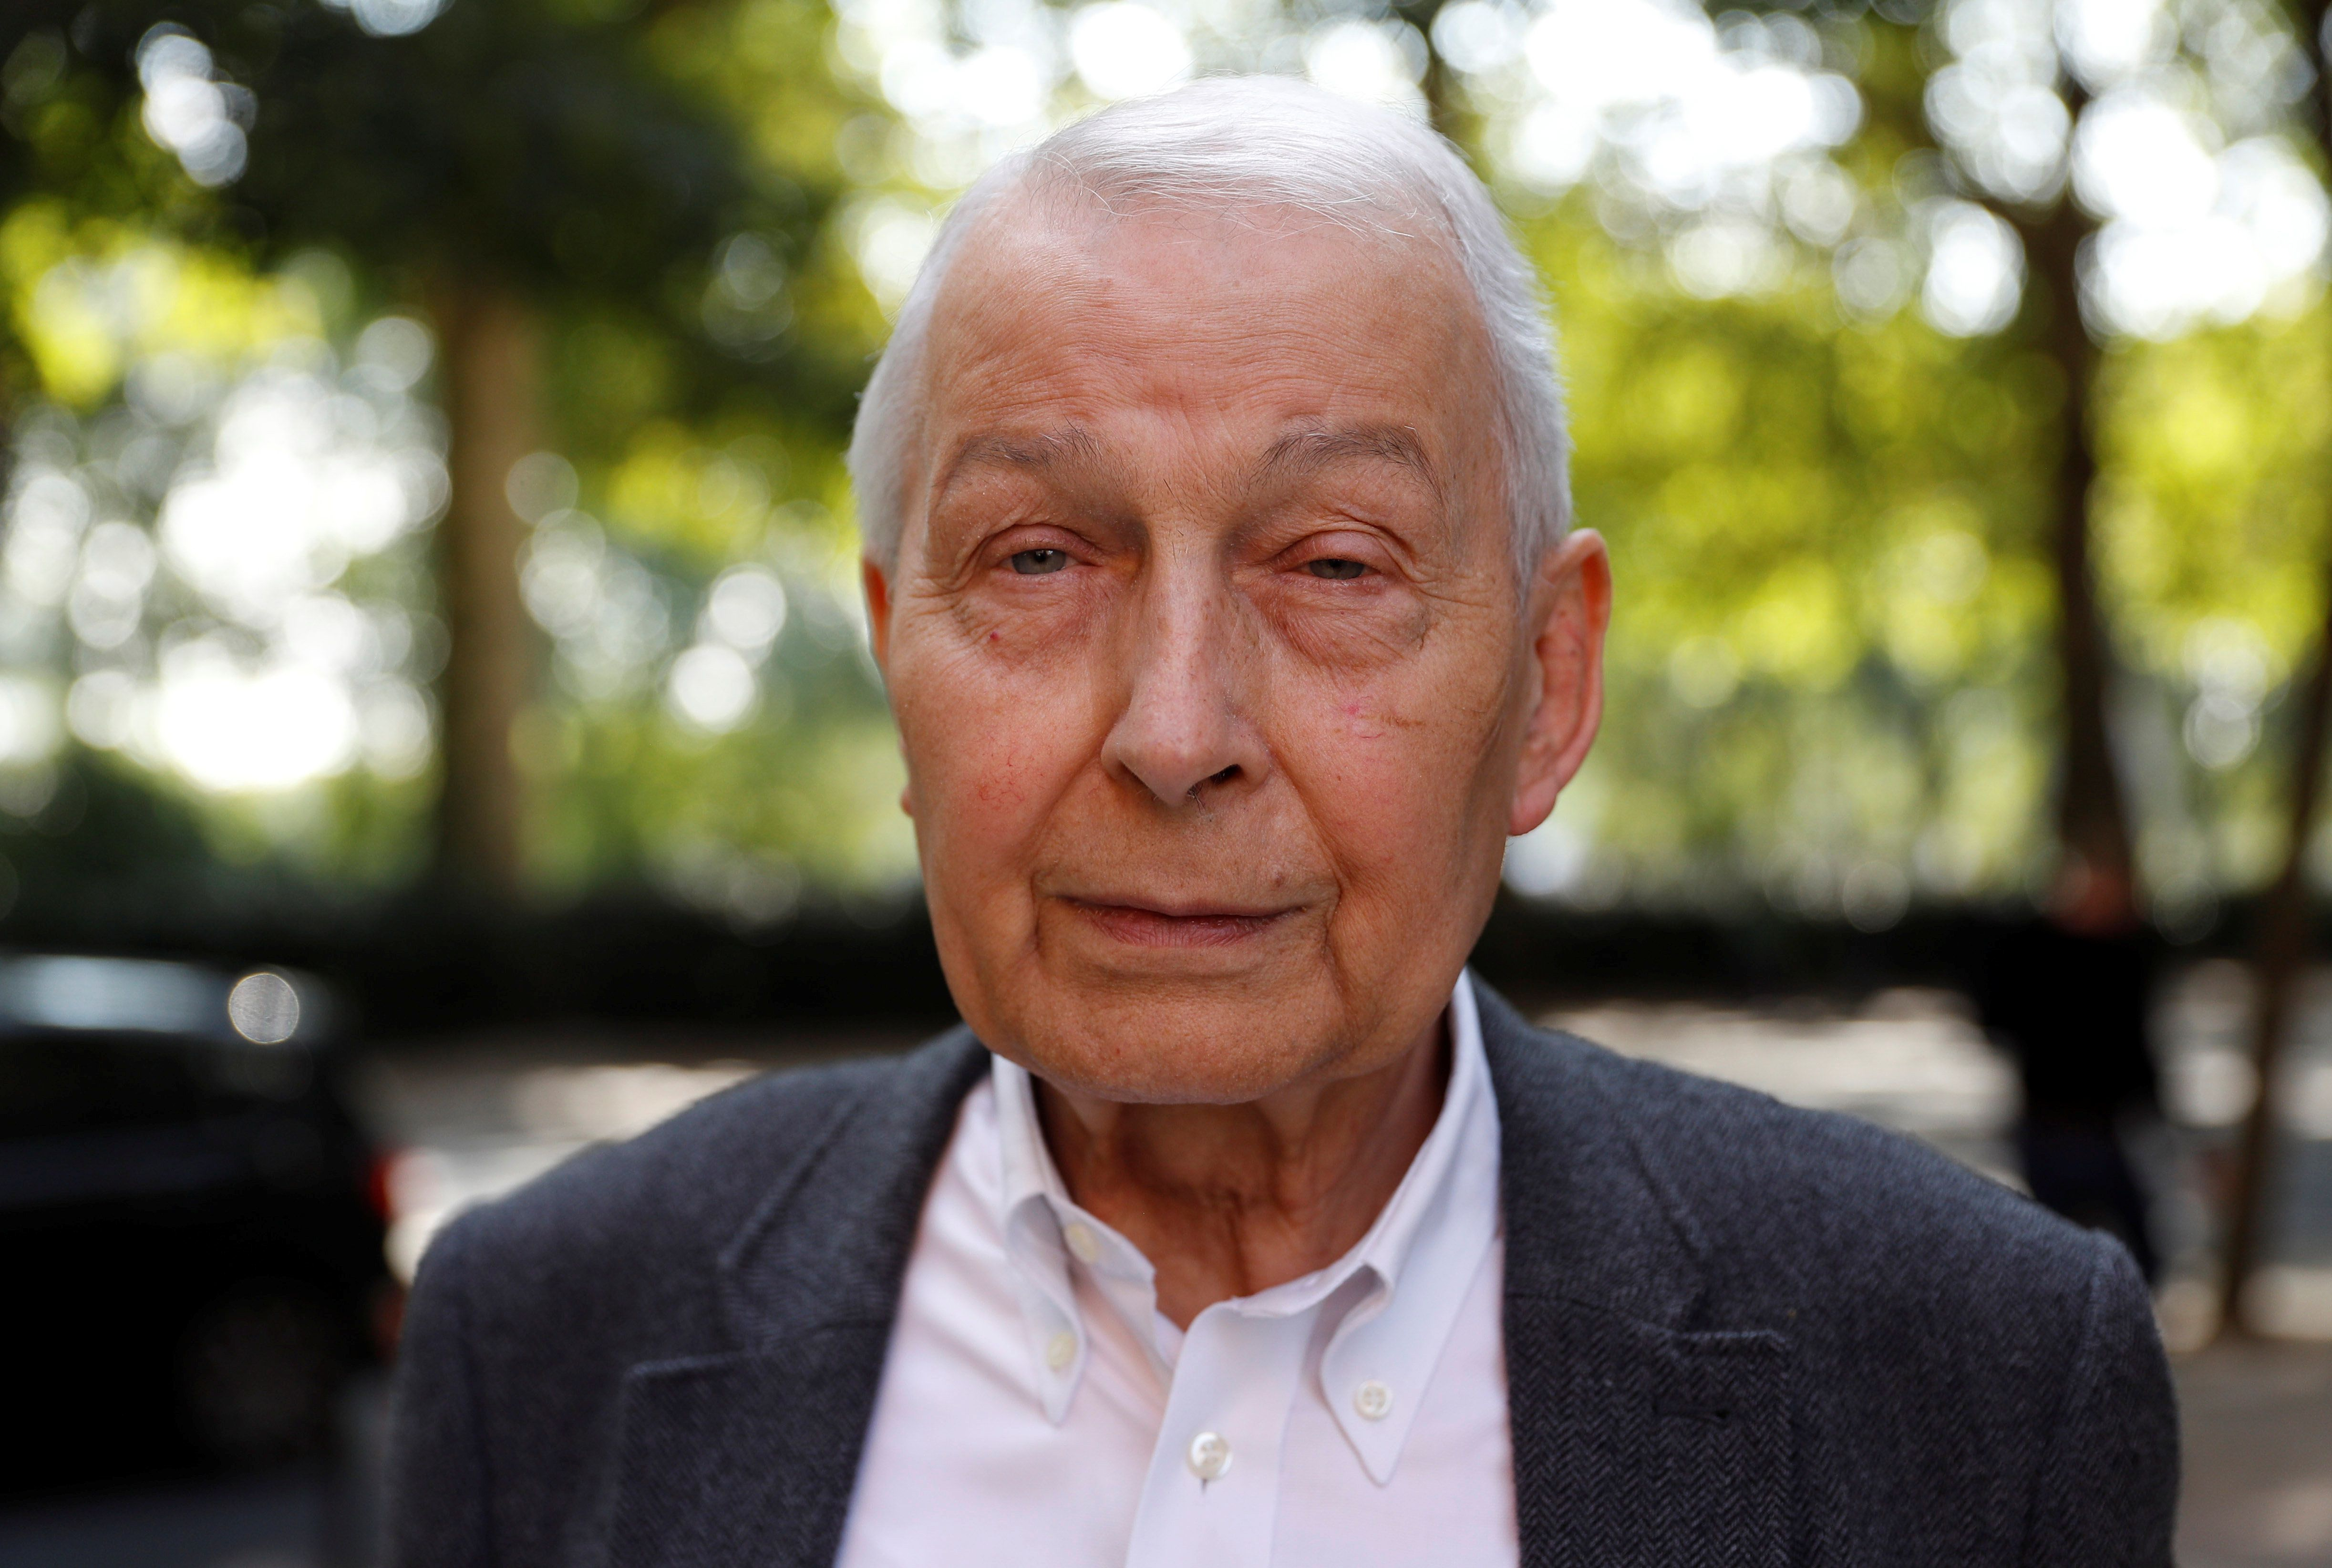 Labour Council Leader Demands Bullying Investigation In Wake Of Frank Field